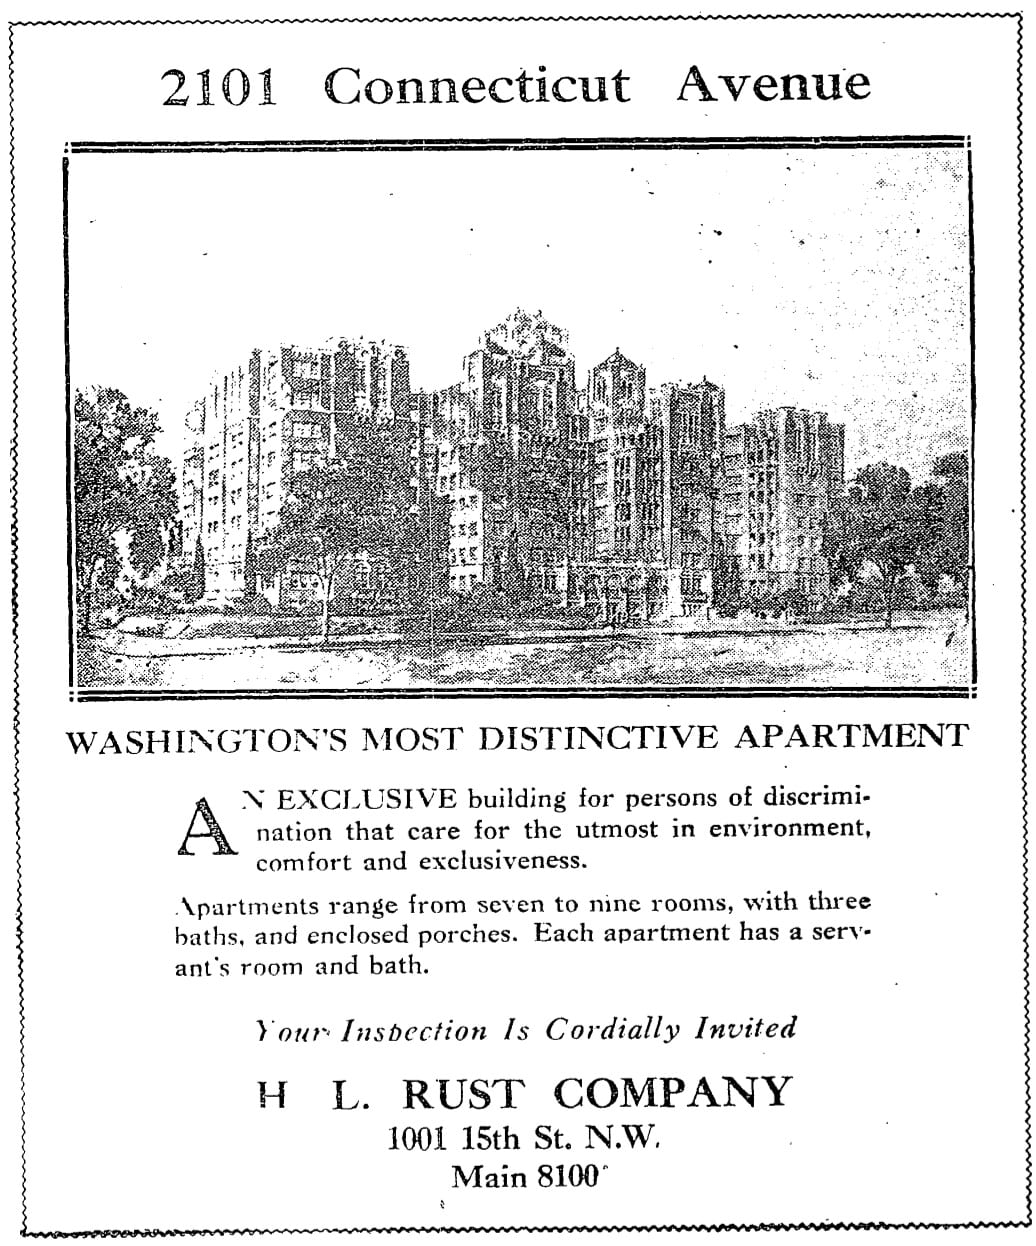 2101 Connecticut Ave. NW advertisement